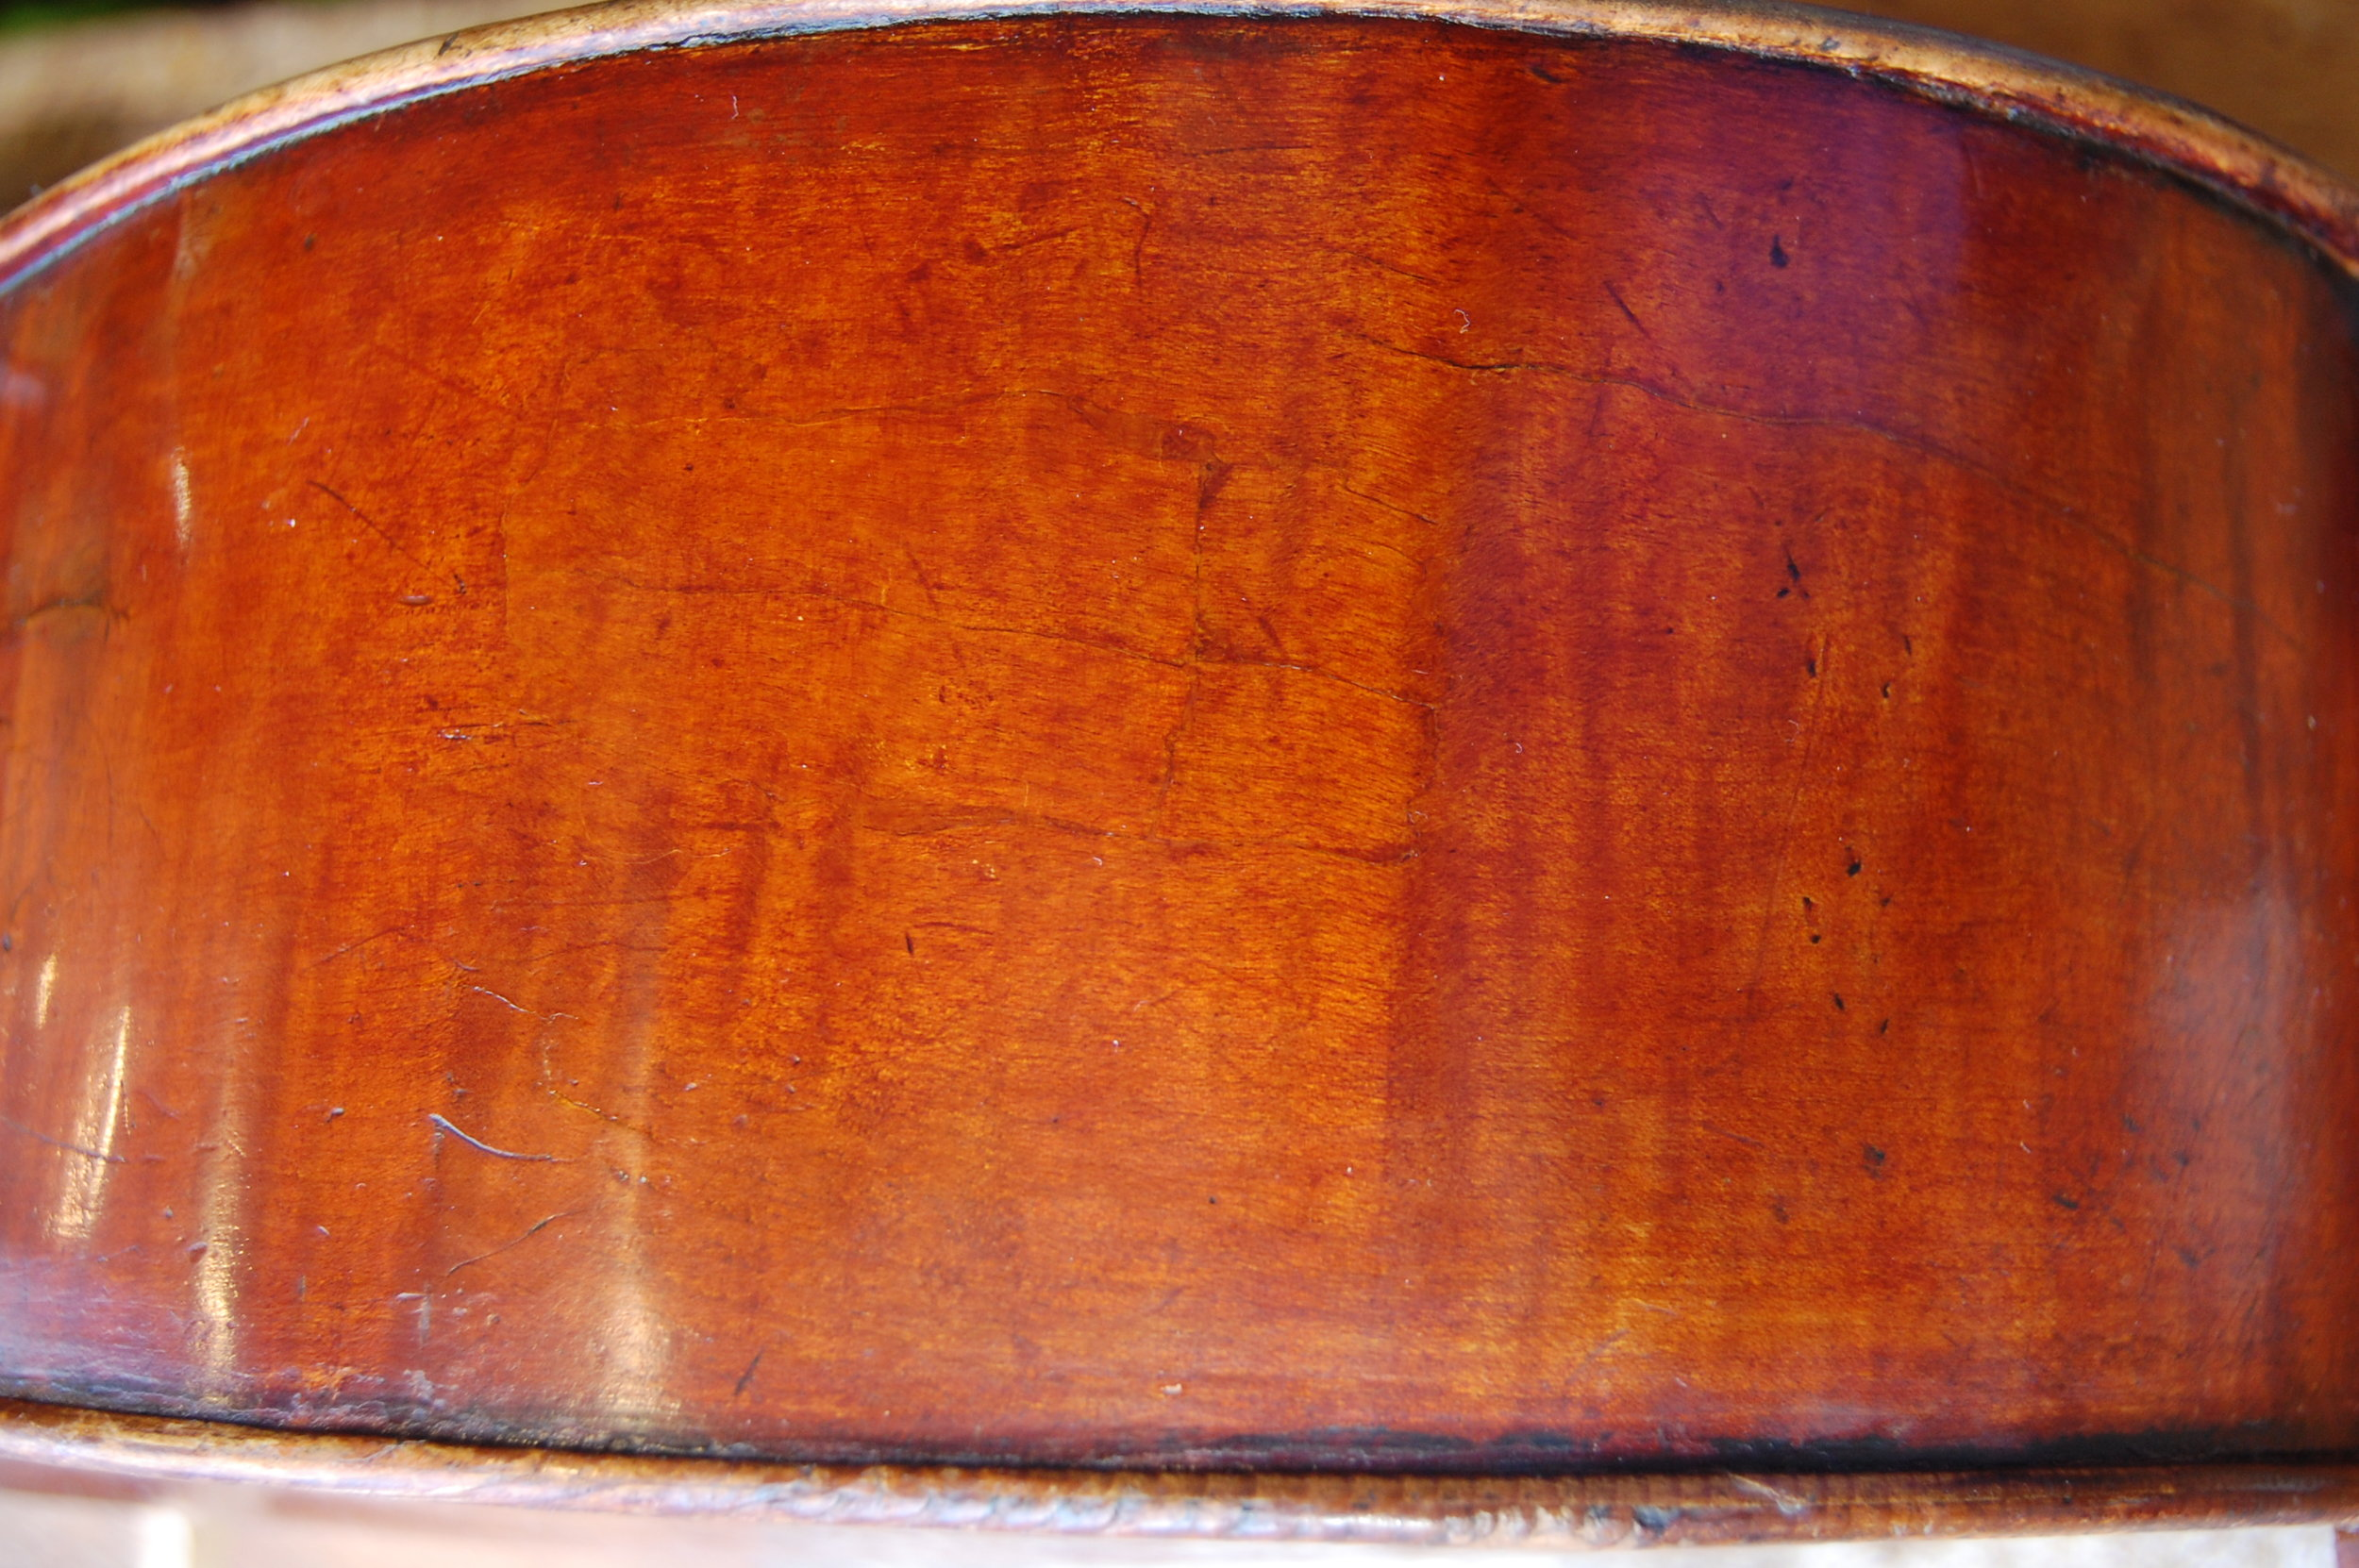 After!  The benefits of hide glue over synthetic are as follows;  It dries transparent so if you are gluing a crack there's no visible line or on any joint,  It's water soluble so that if a joint needs to come apart the old glue can be washed away back to bare wood ready for re- gluing,  The glue remains stable through time, there's no 'creep' or movement as there would be with a PVA type synthetic glue.